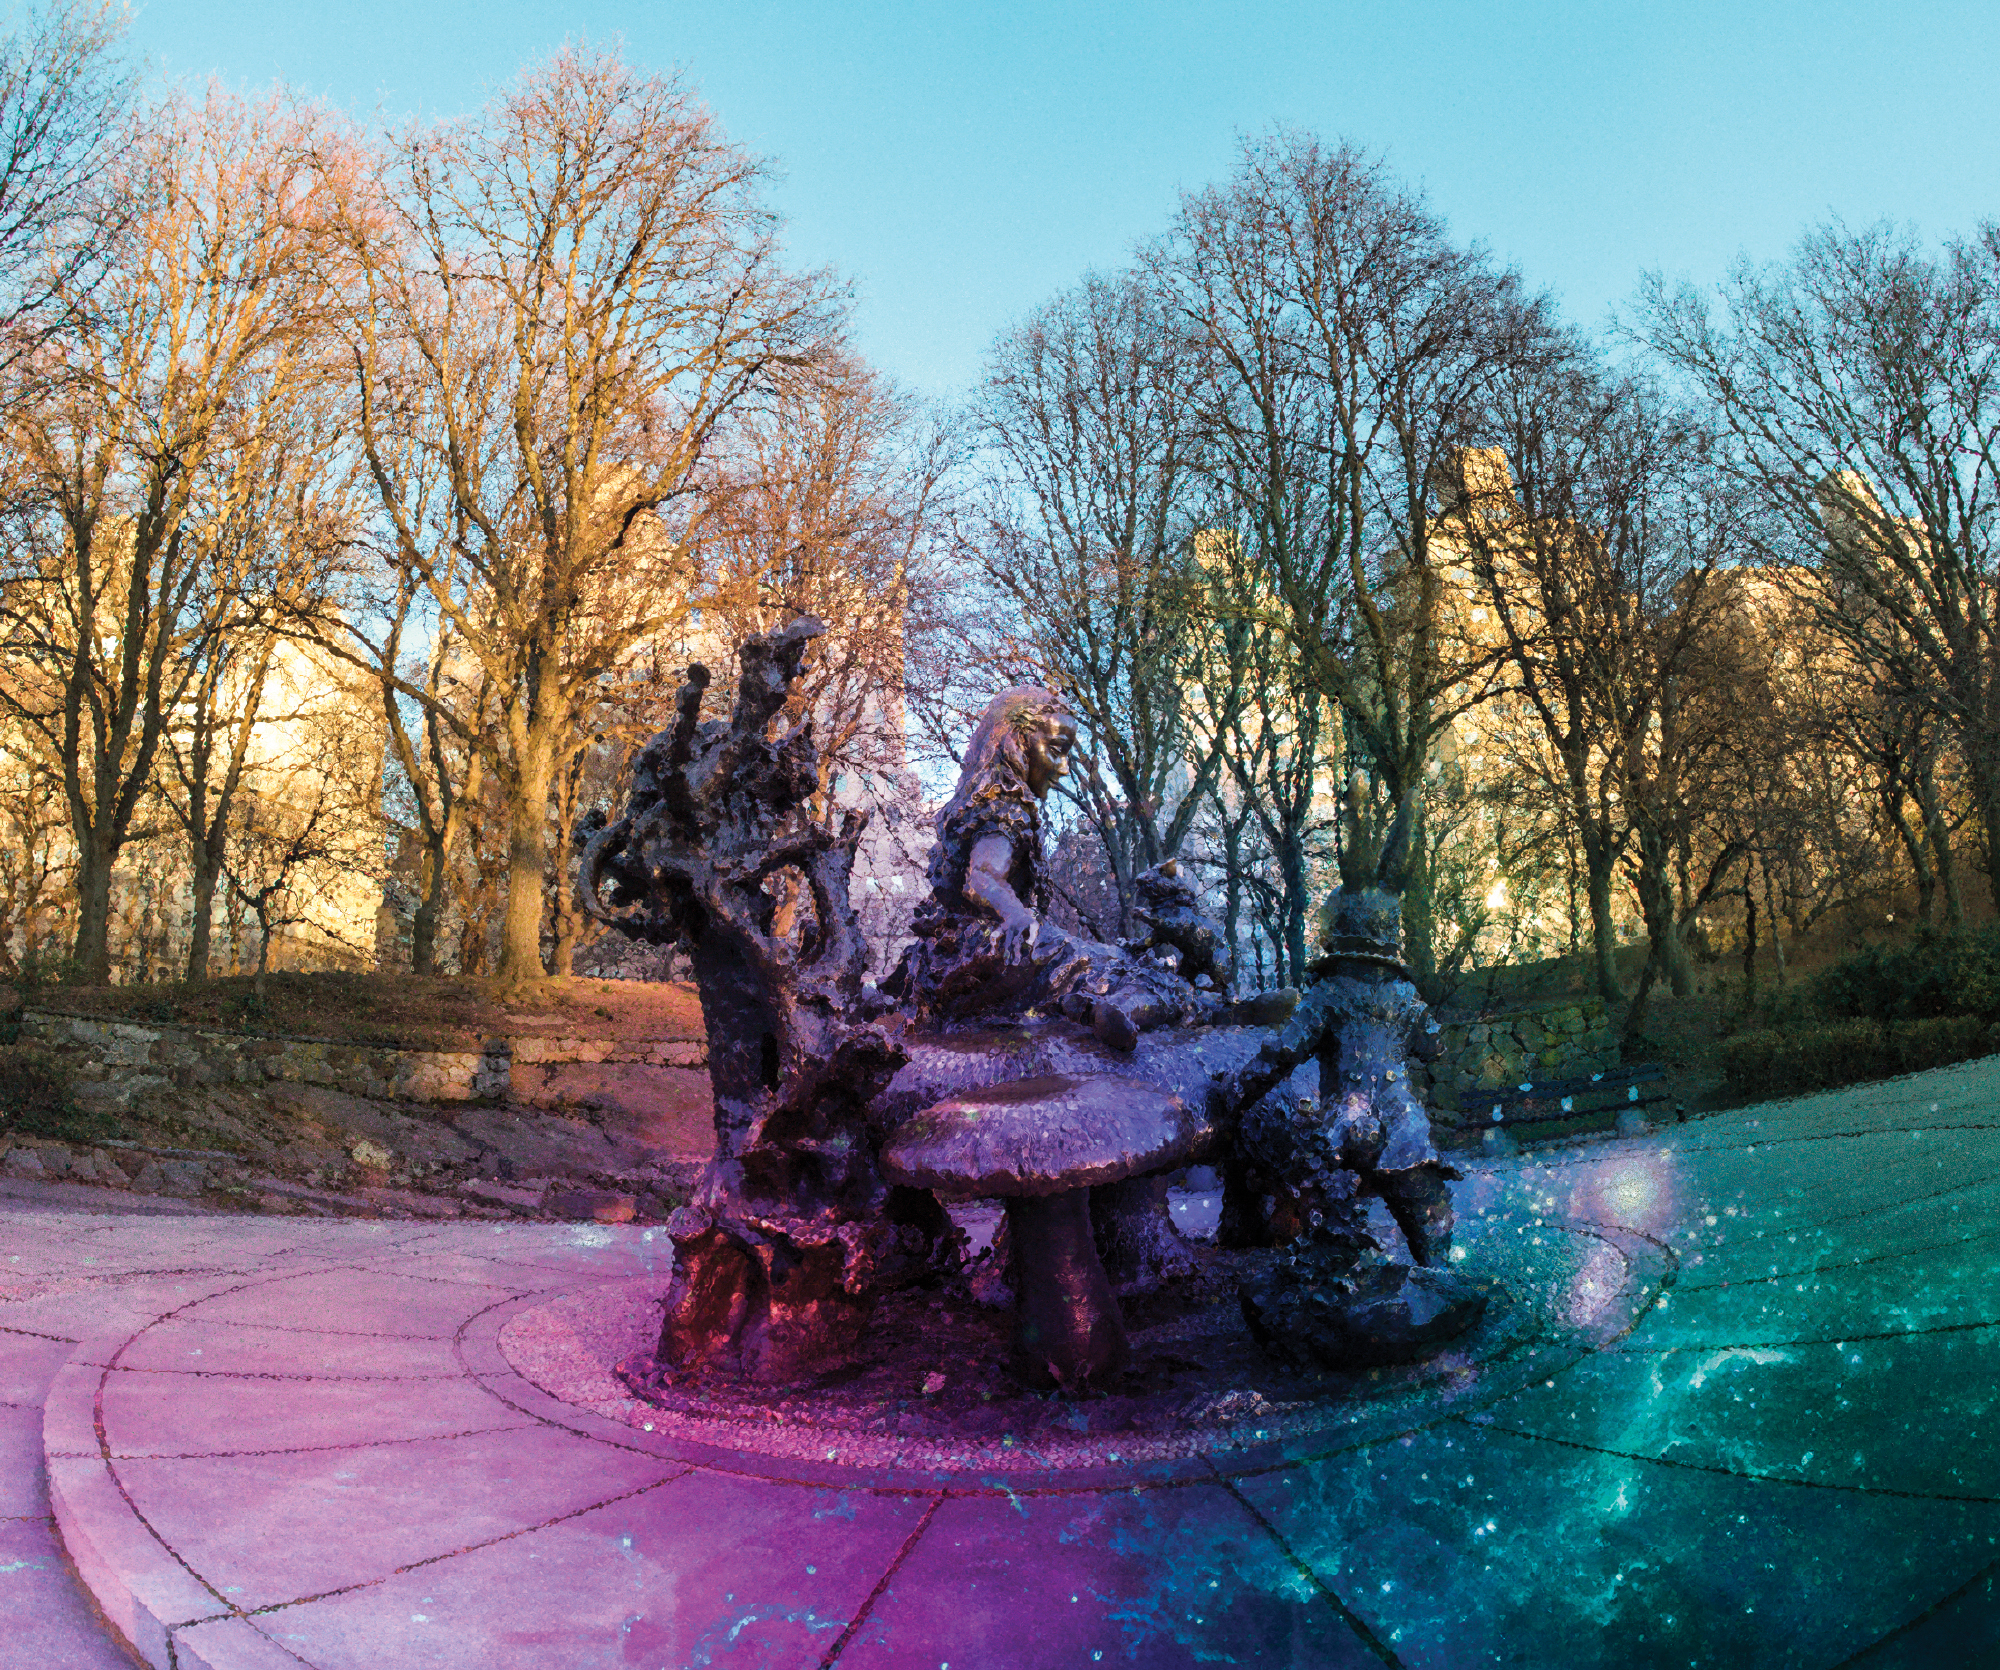 Colorful and whimsical photograph of the Alice in Wonderland statue in Central Park, NY during the fall.